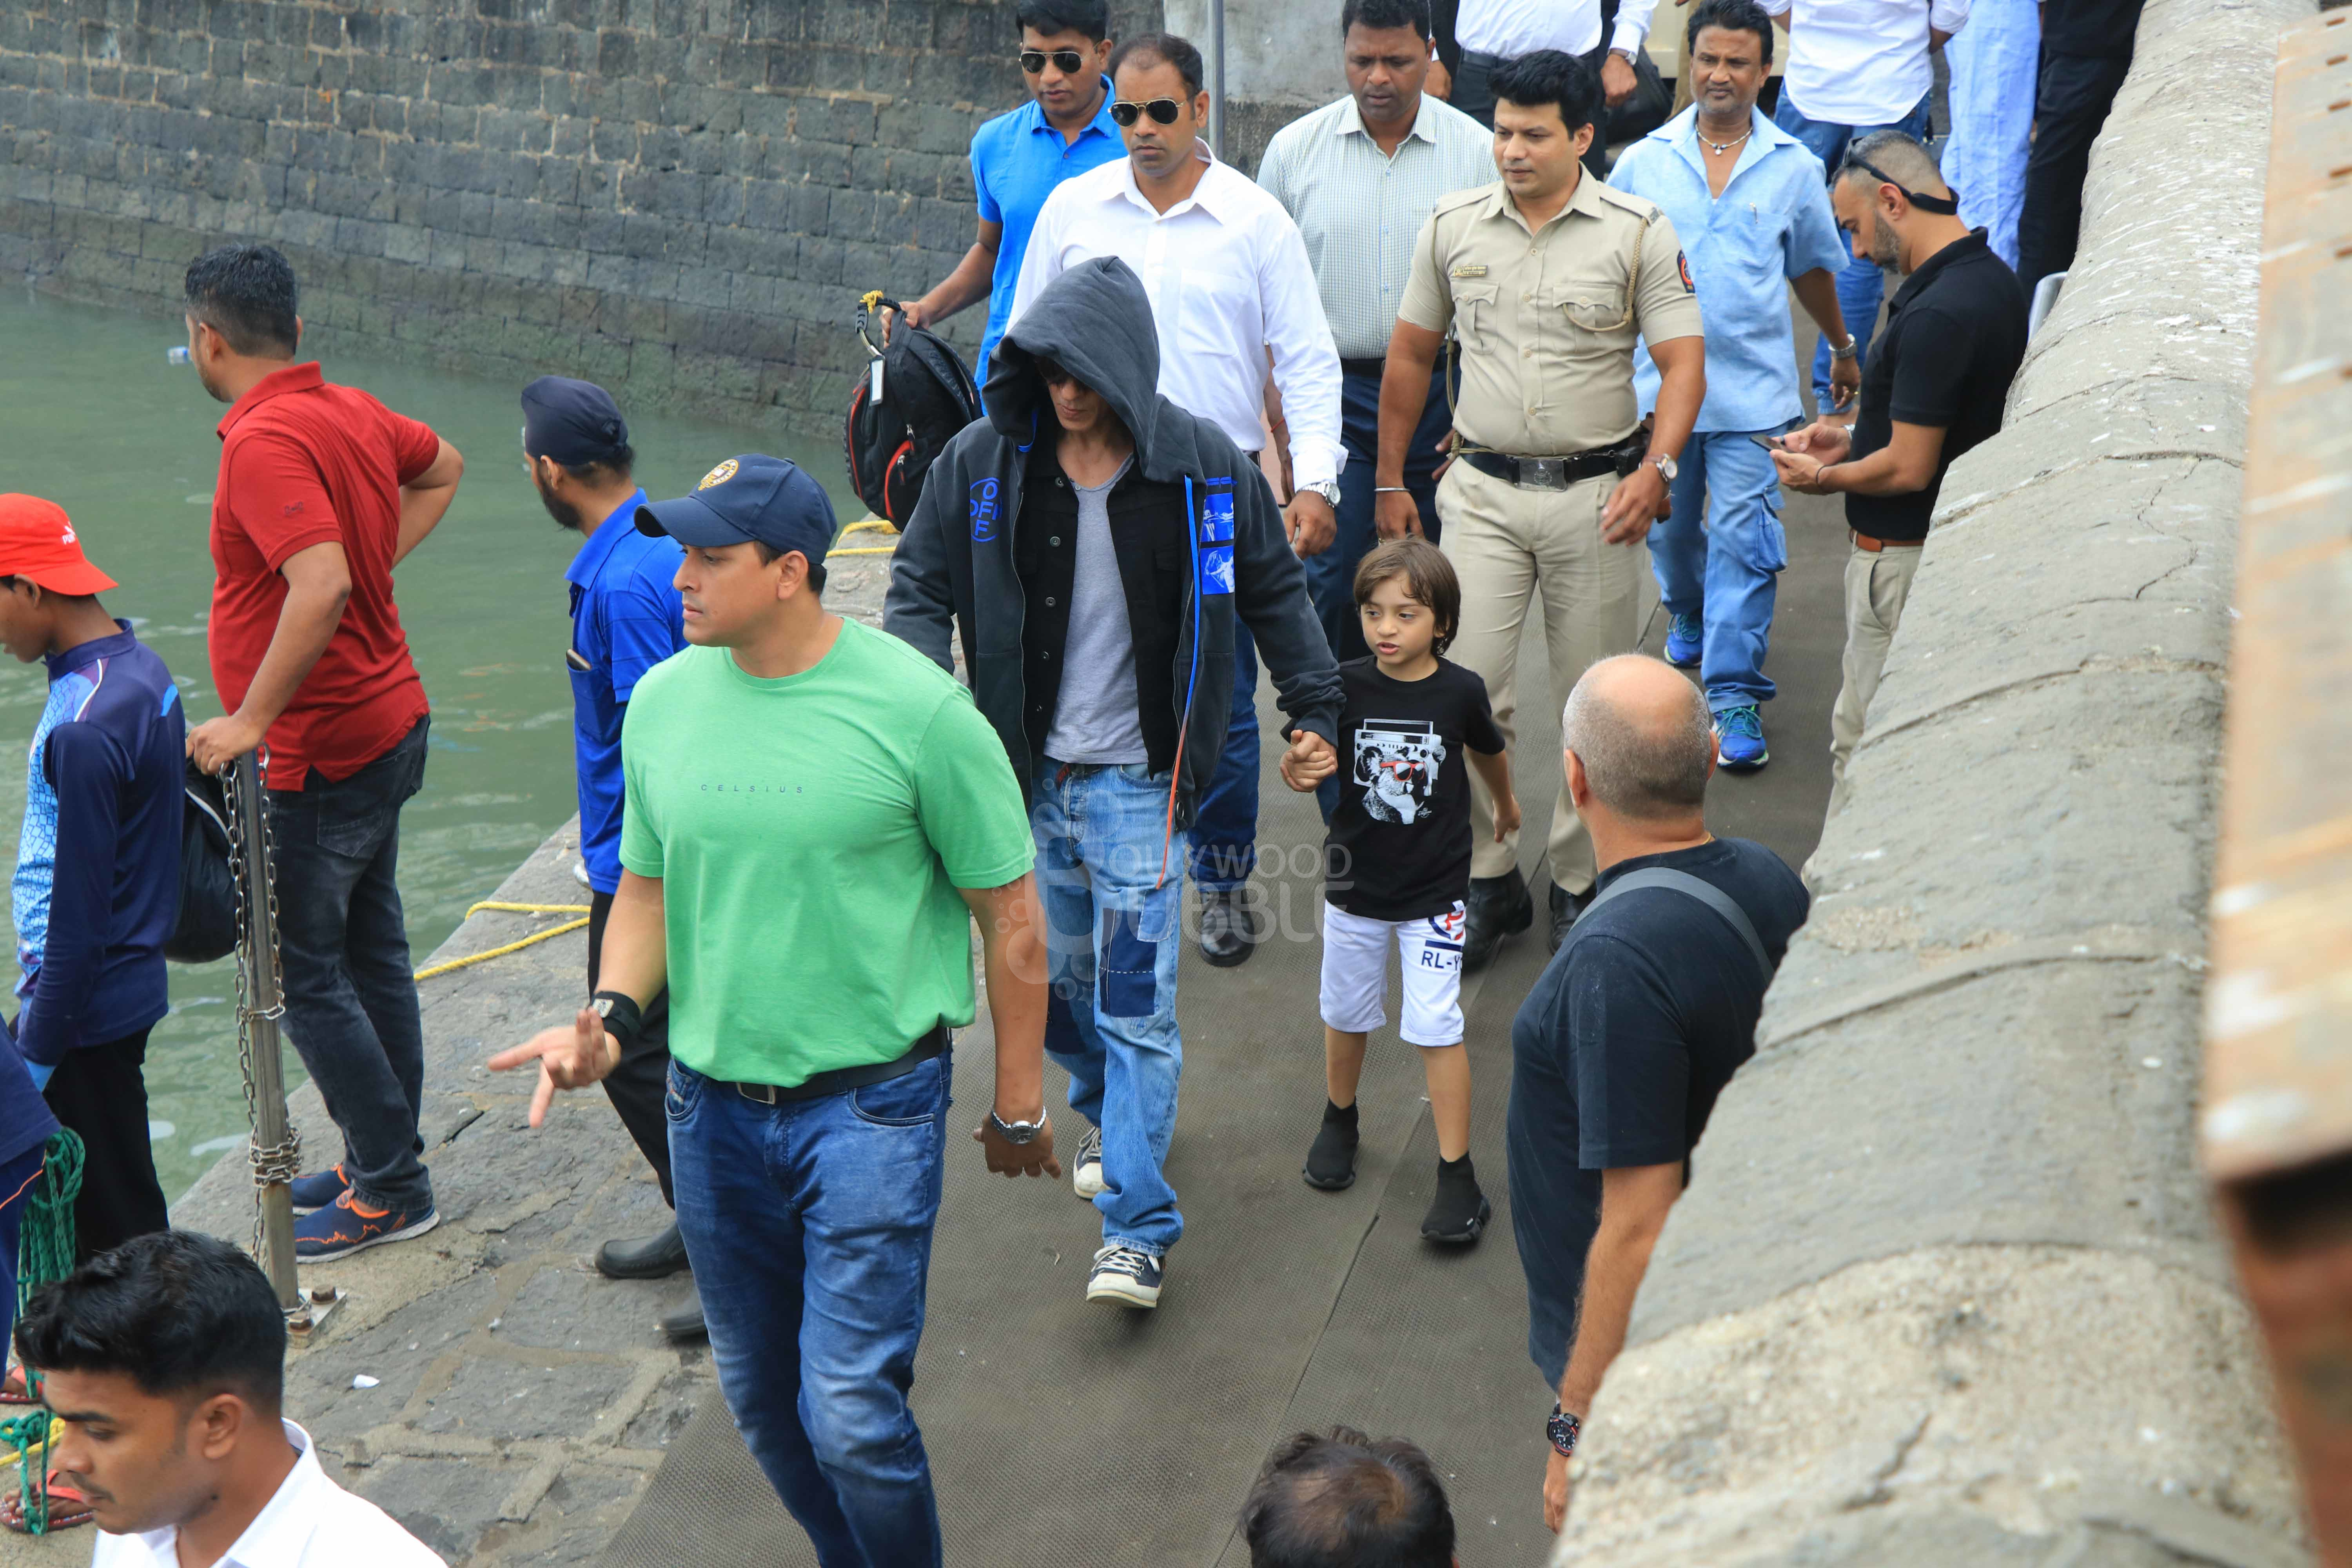 SRK with his son